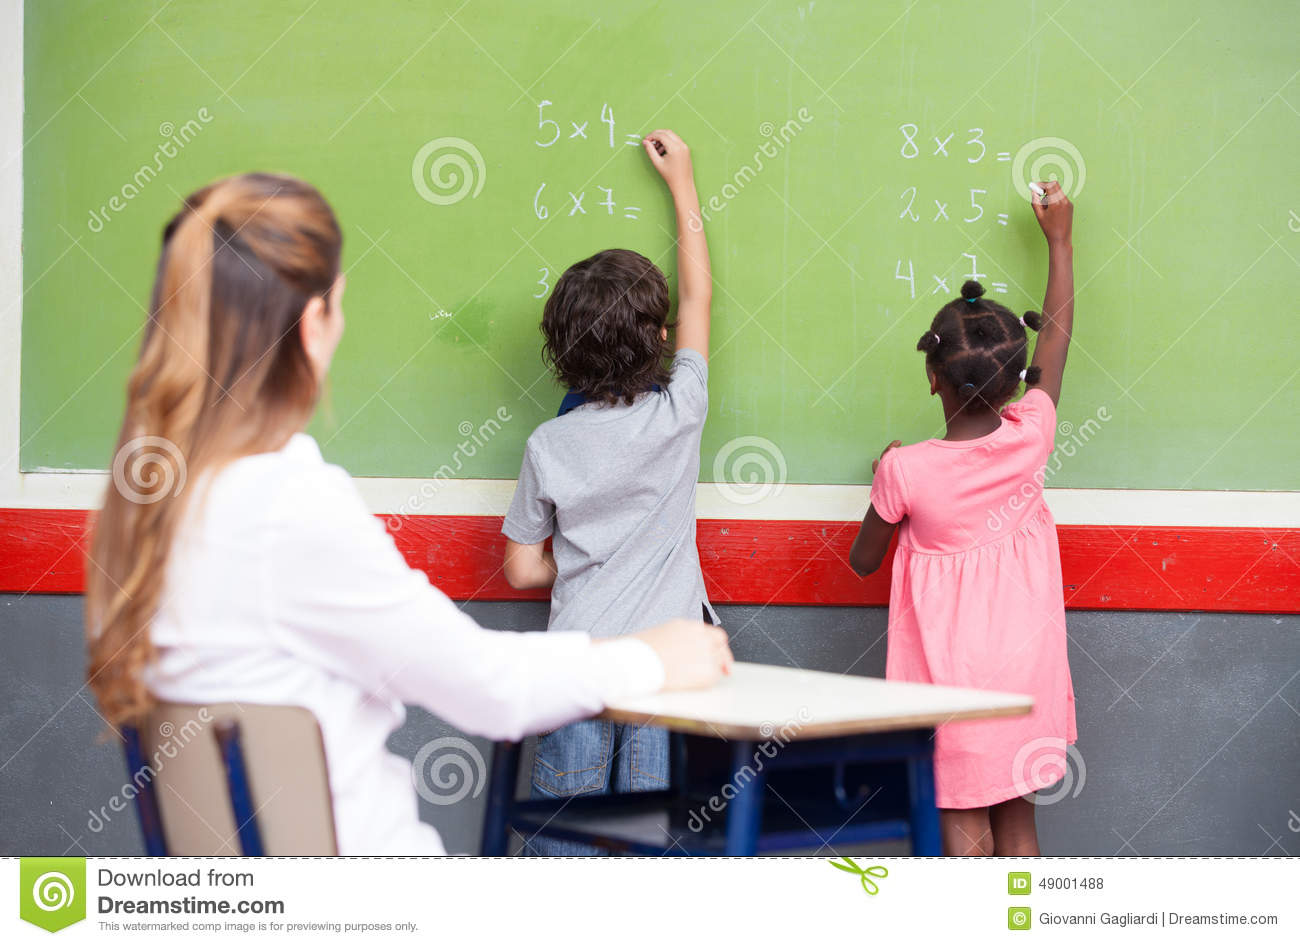 write a hypothesis based on the students observations in the classroom